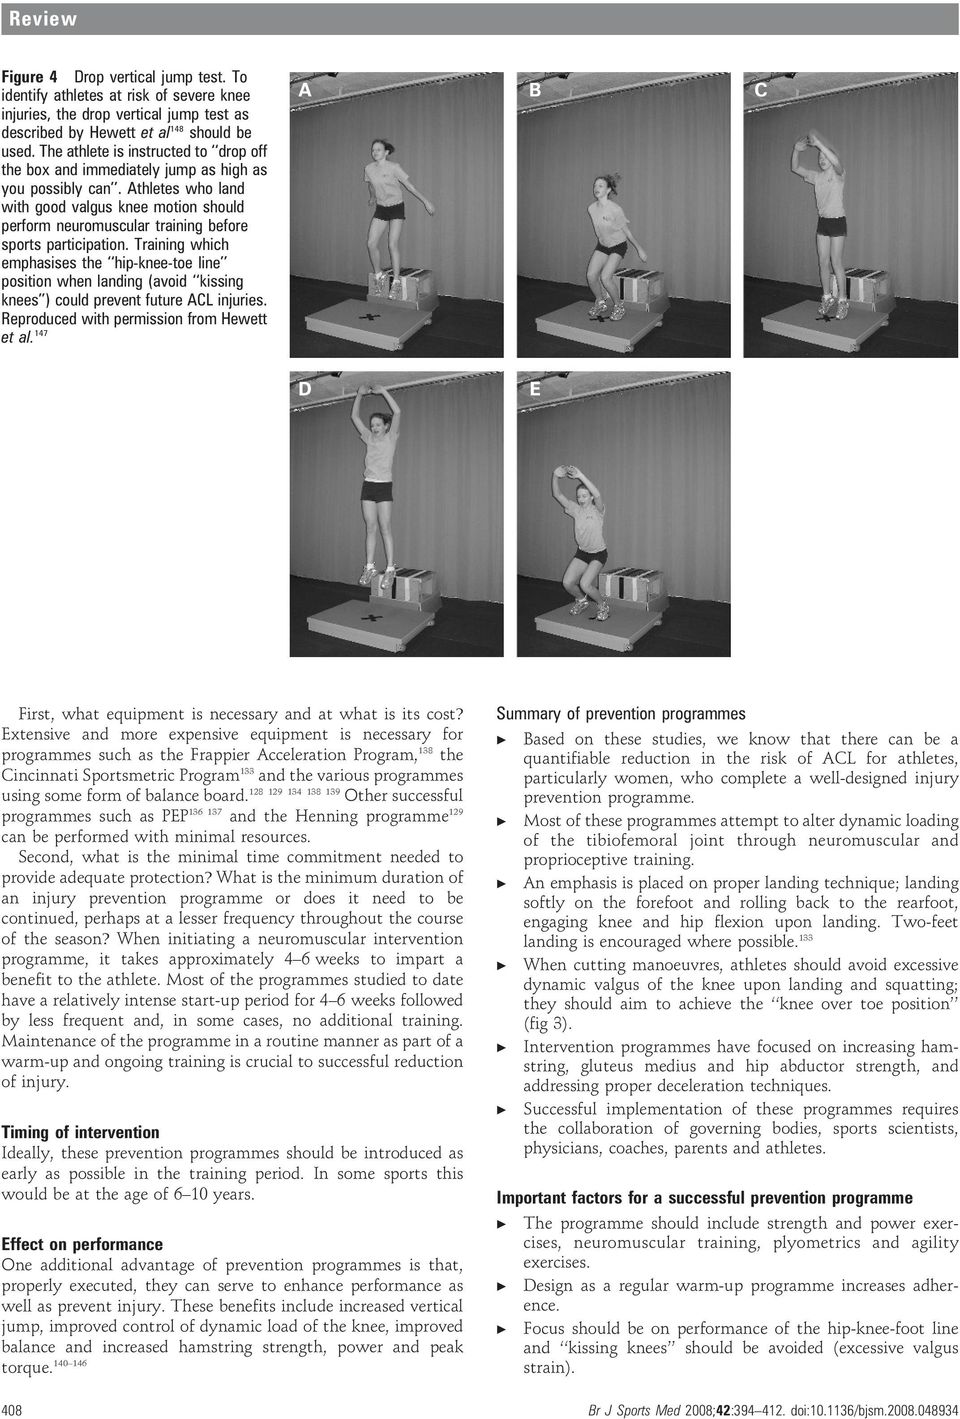 Athletes who land with good valgus knee motion should perform neuromusular training before sports partiipation.